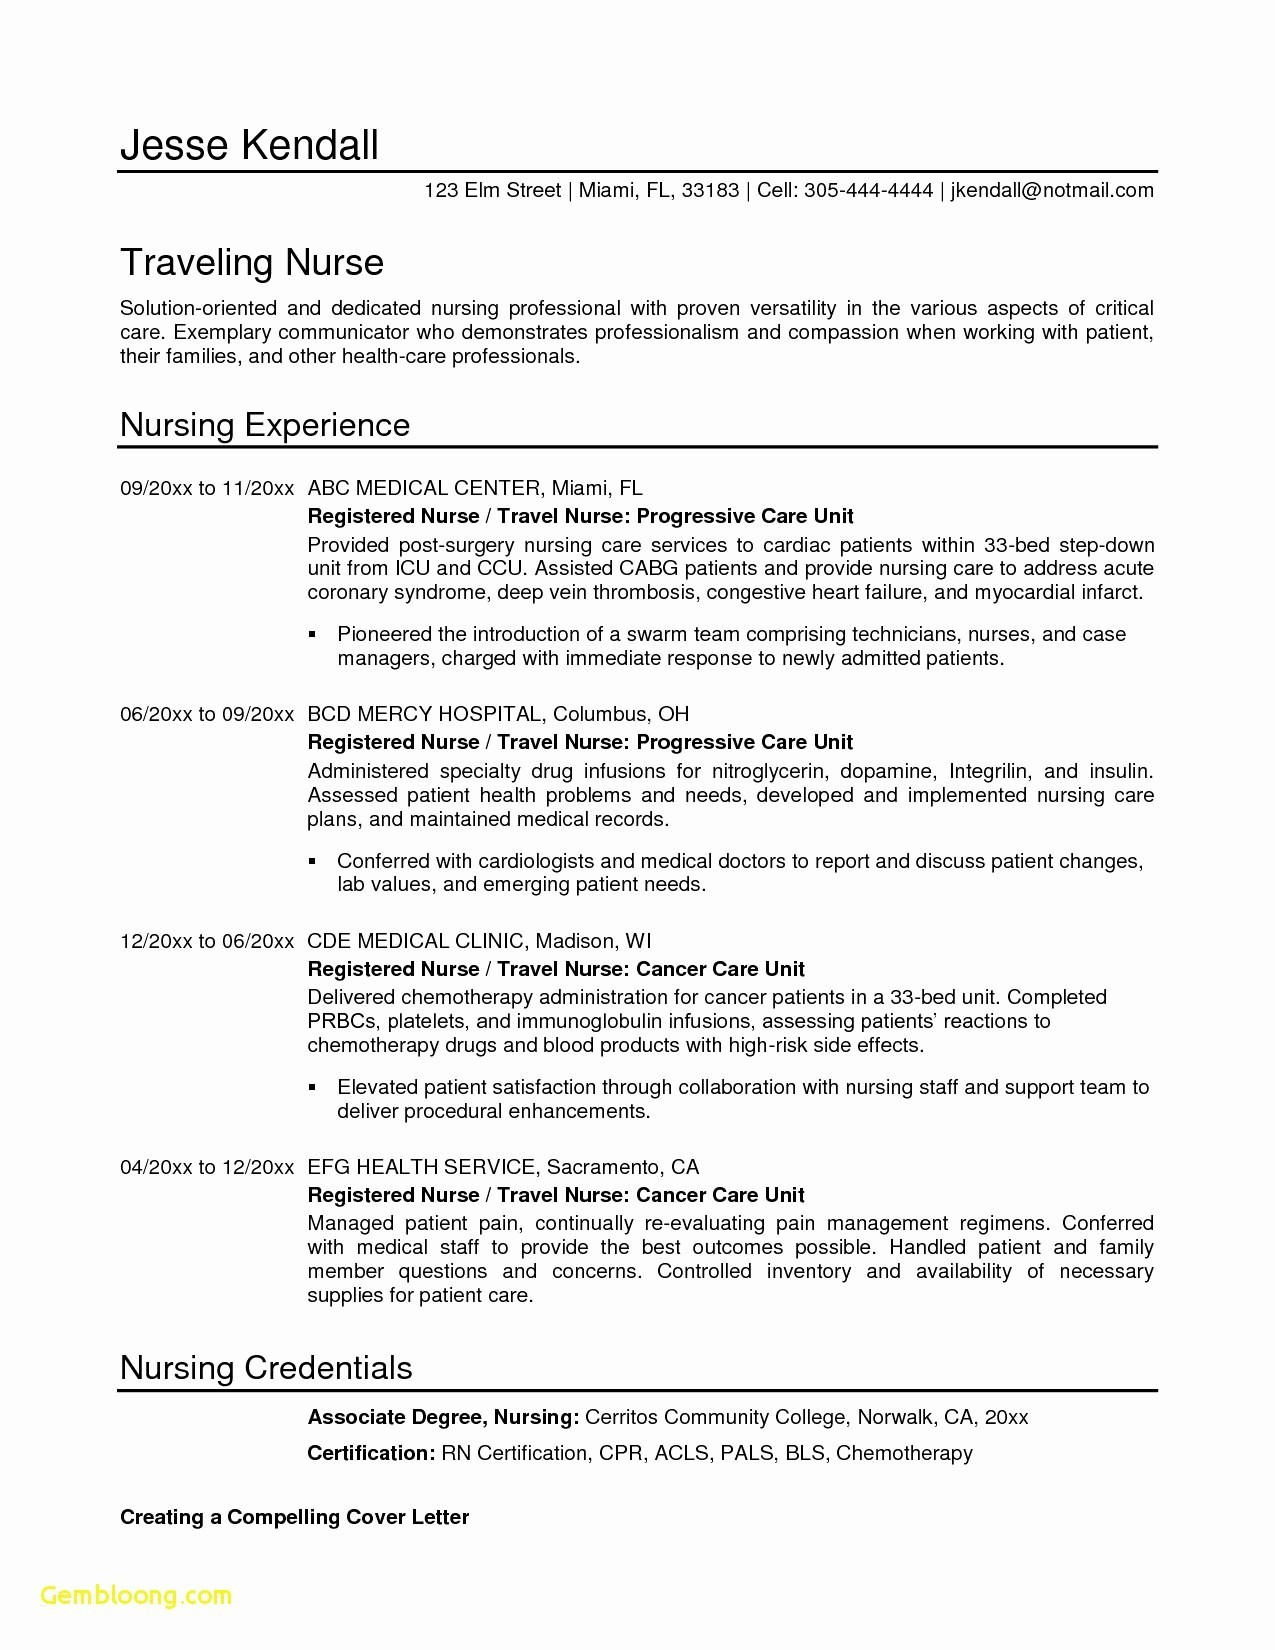 hospital letter template example-Resume format for Nursing Inspirational Registered Nurse Resume S I Pinimg 736x 8d 0d D8 12-q